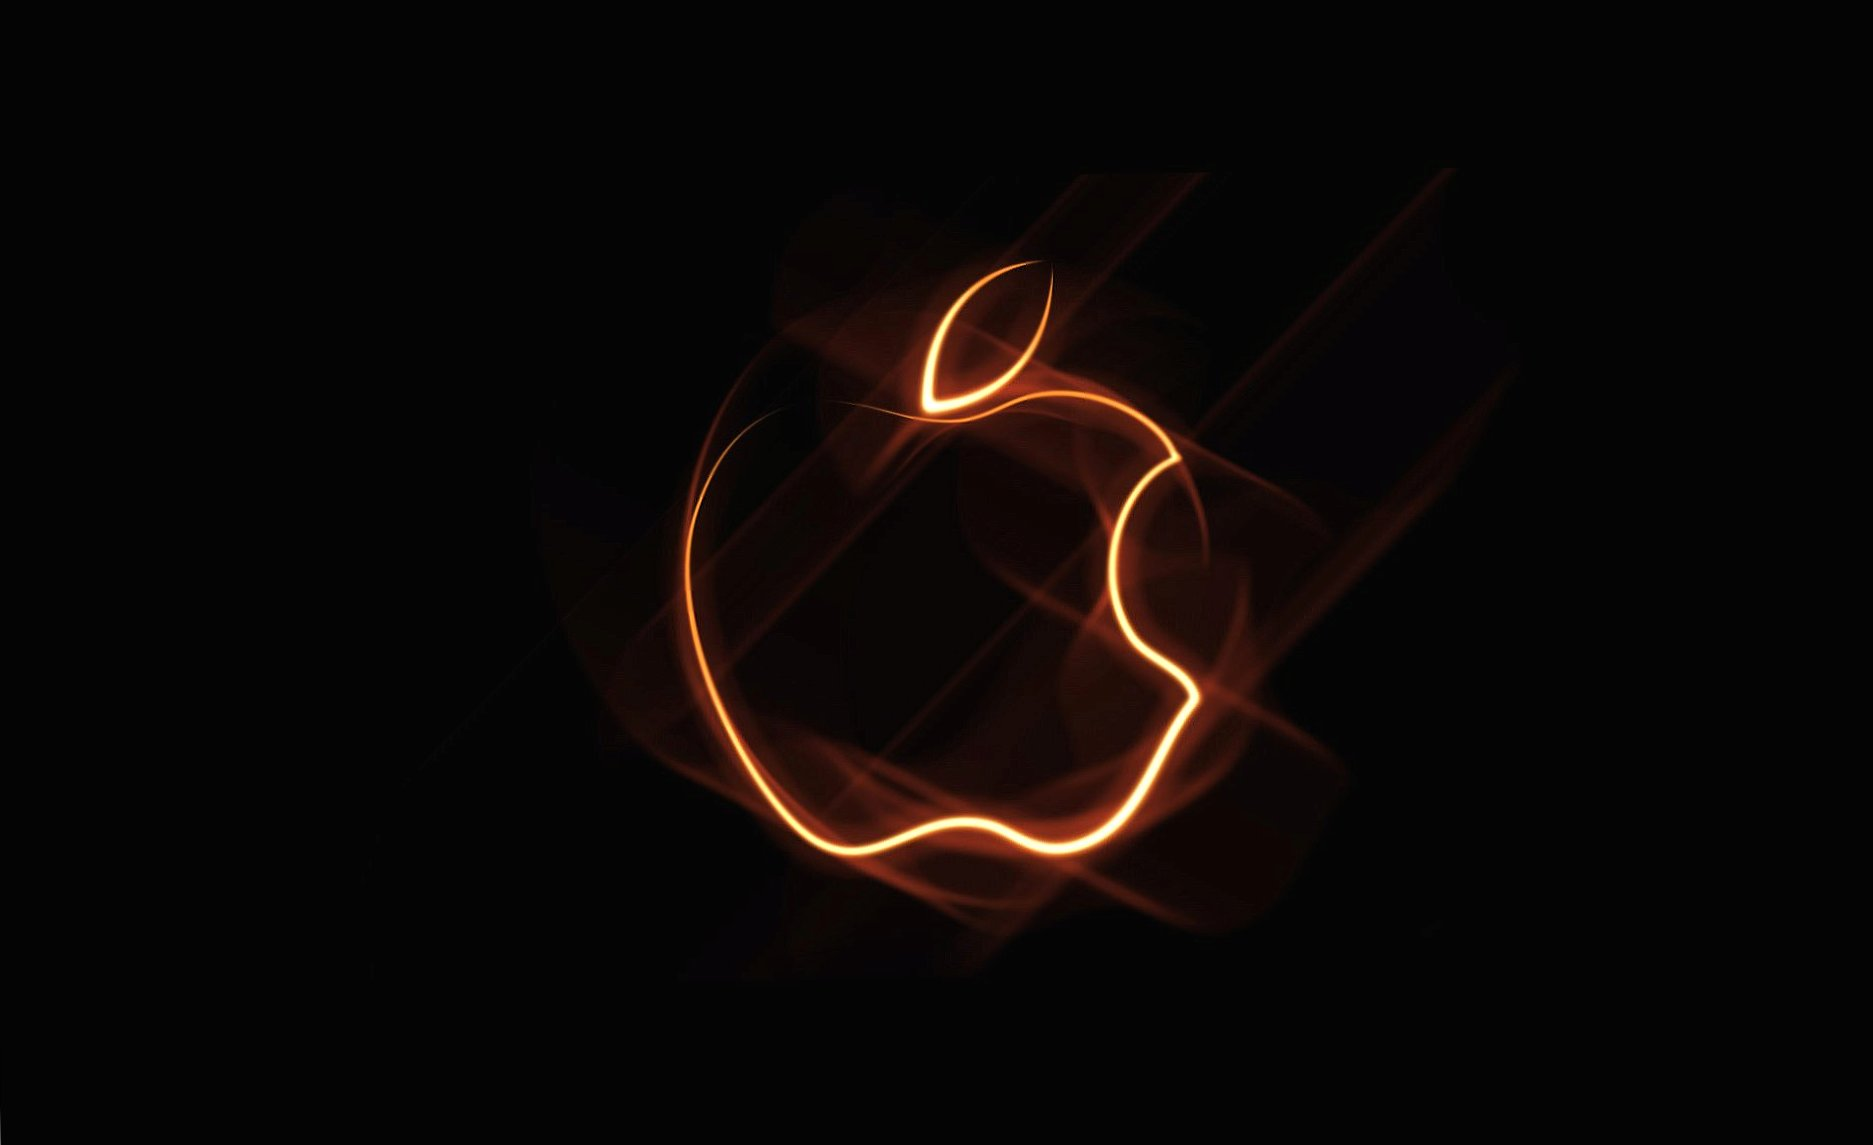 Fire apple wallpapers HD quality